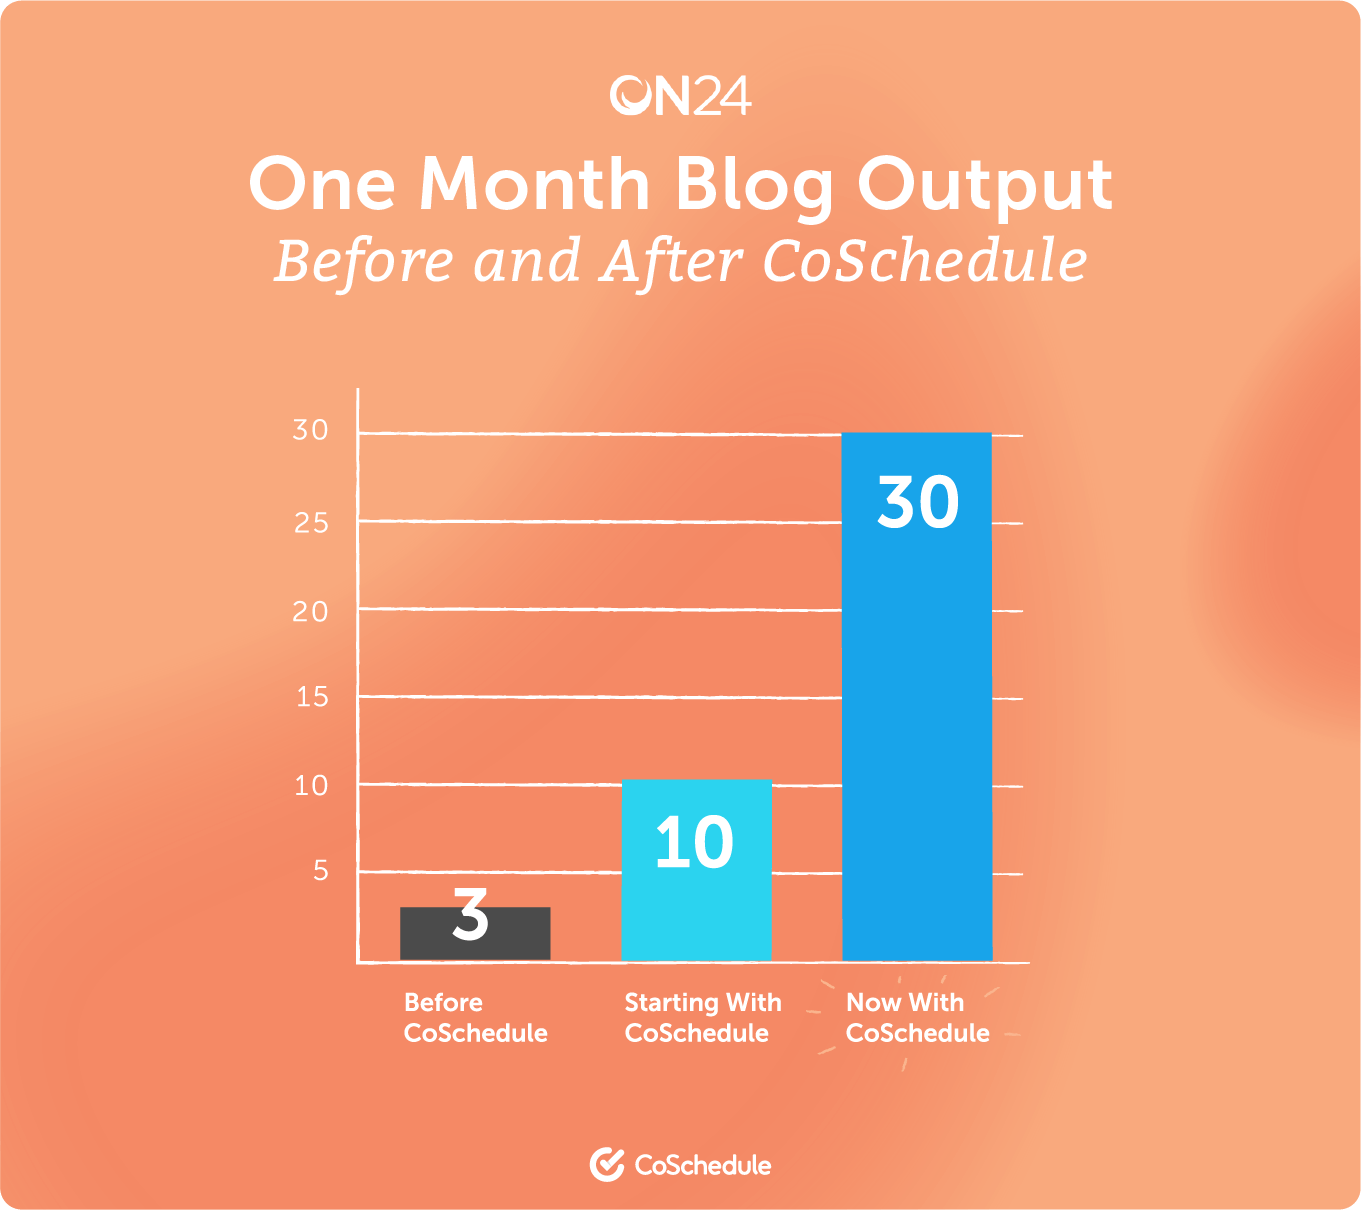 ON24 one month blog output before and after CoSchedule